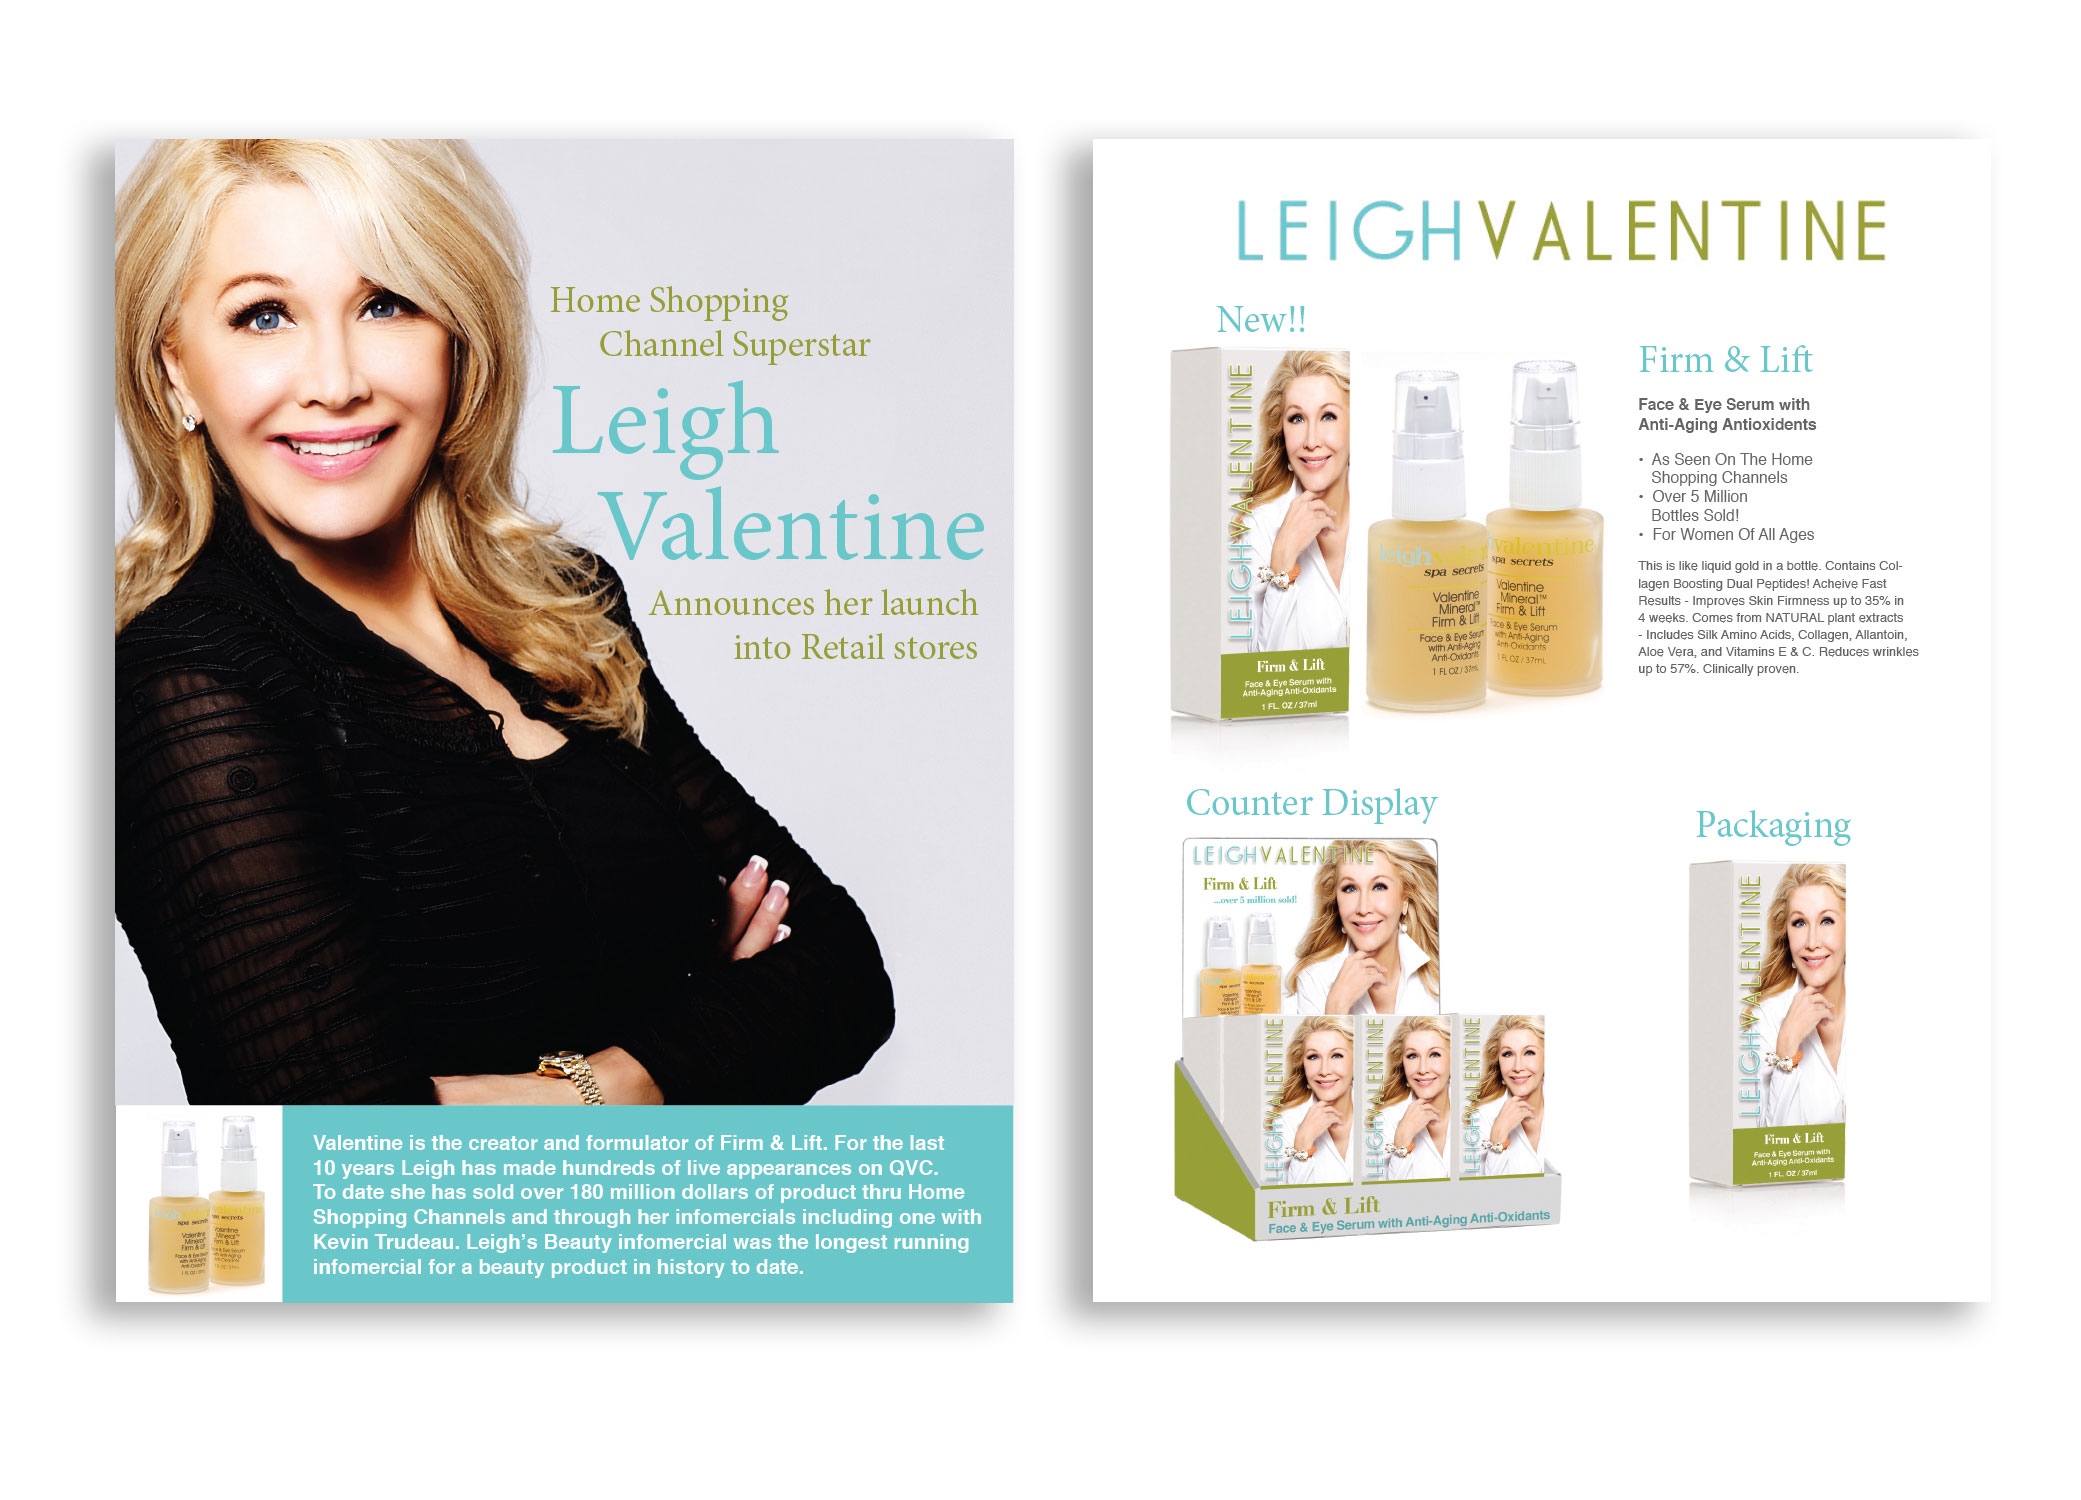 Leigh Valentine brochure including images of counter display, packaging, and the skincare product itself.